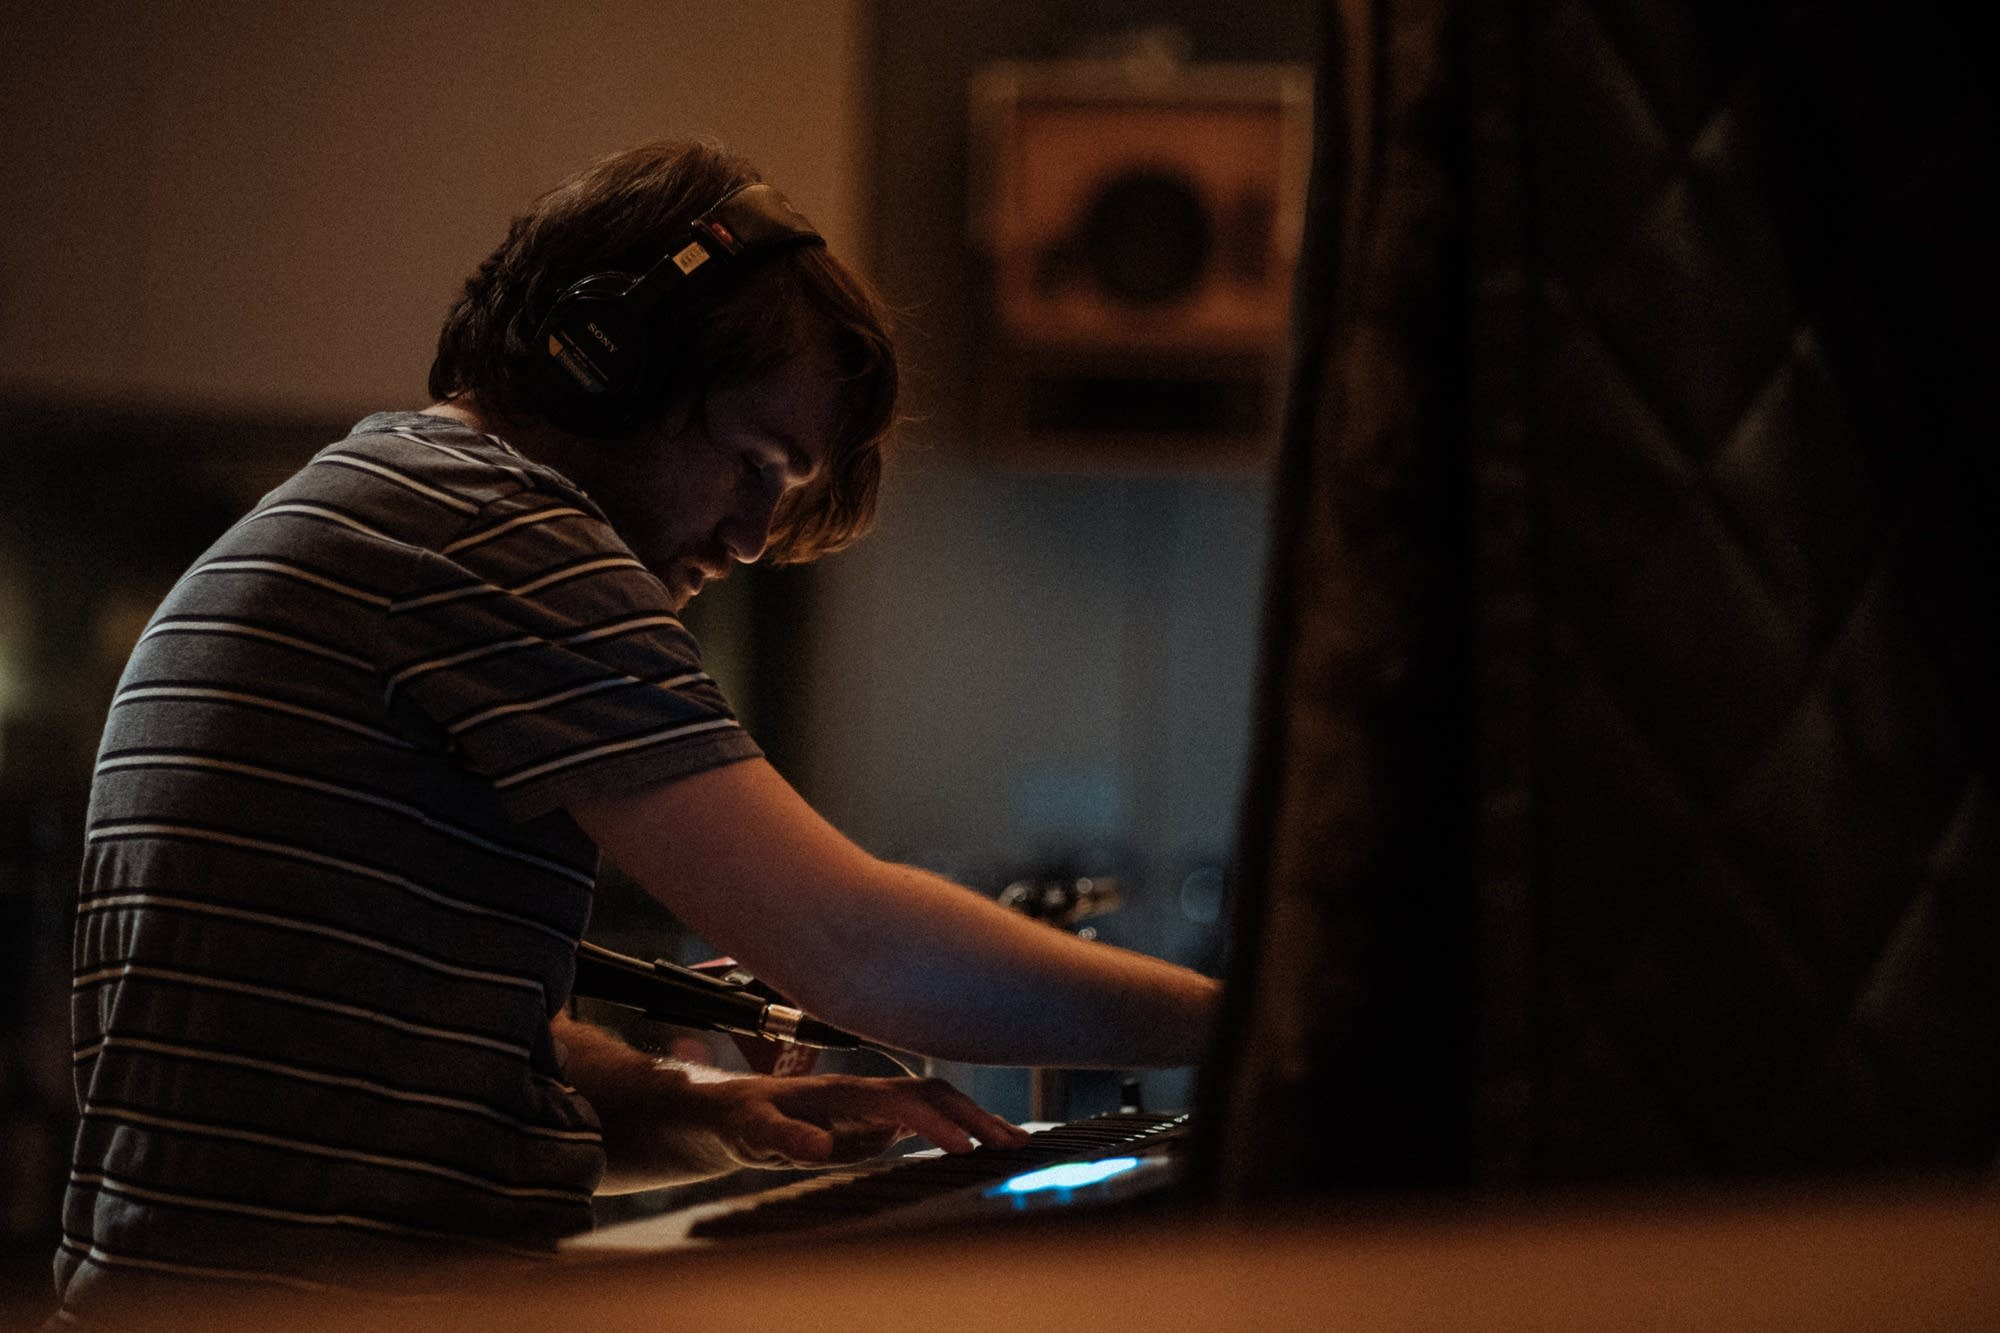 Jacob Ungerleider plays piano for Natalie Prass at The Current